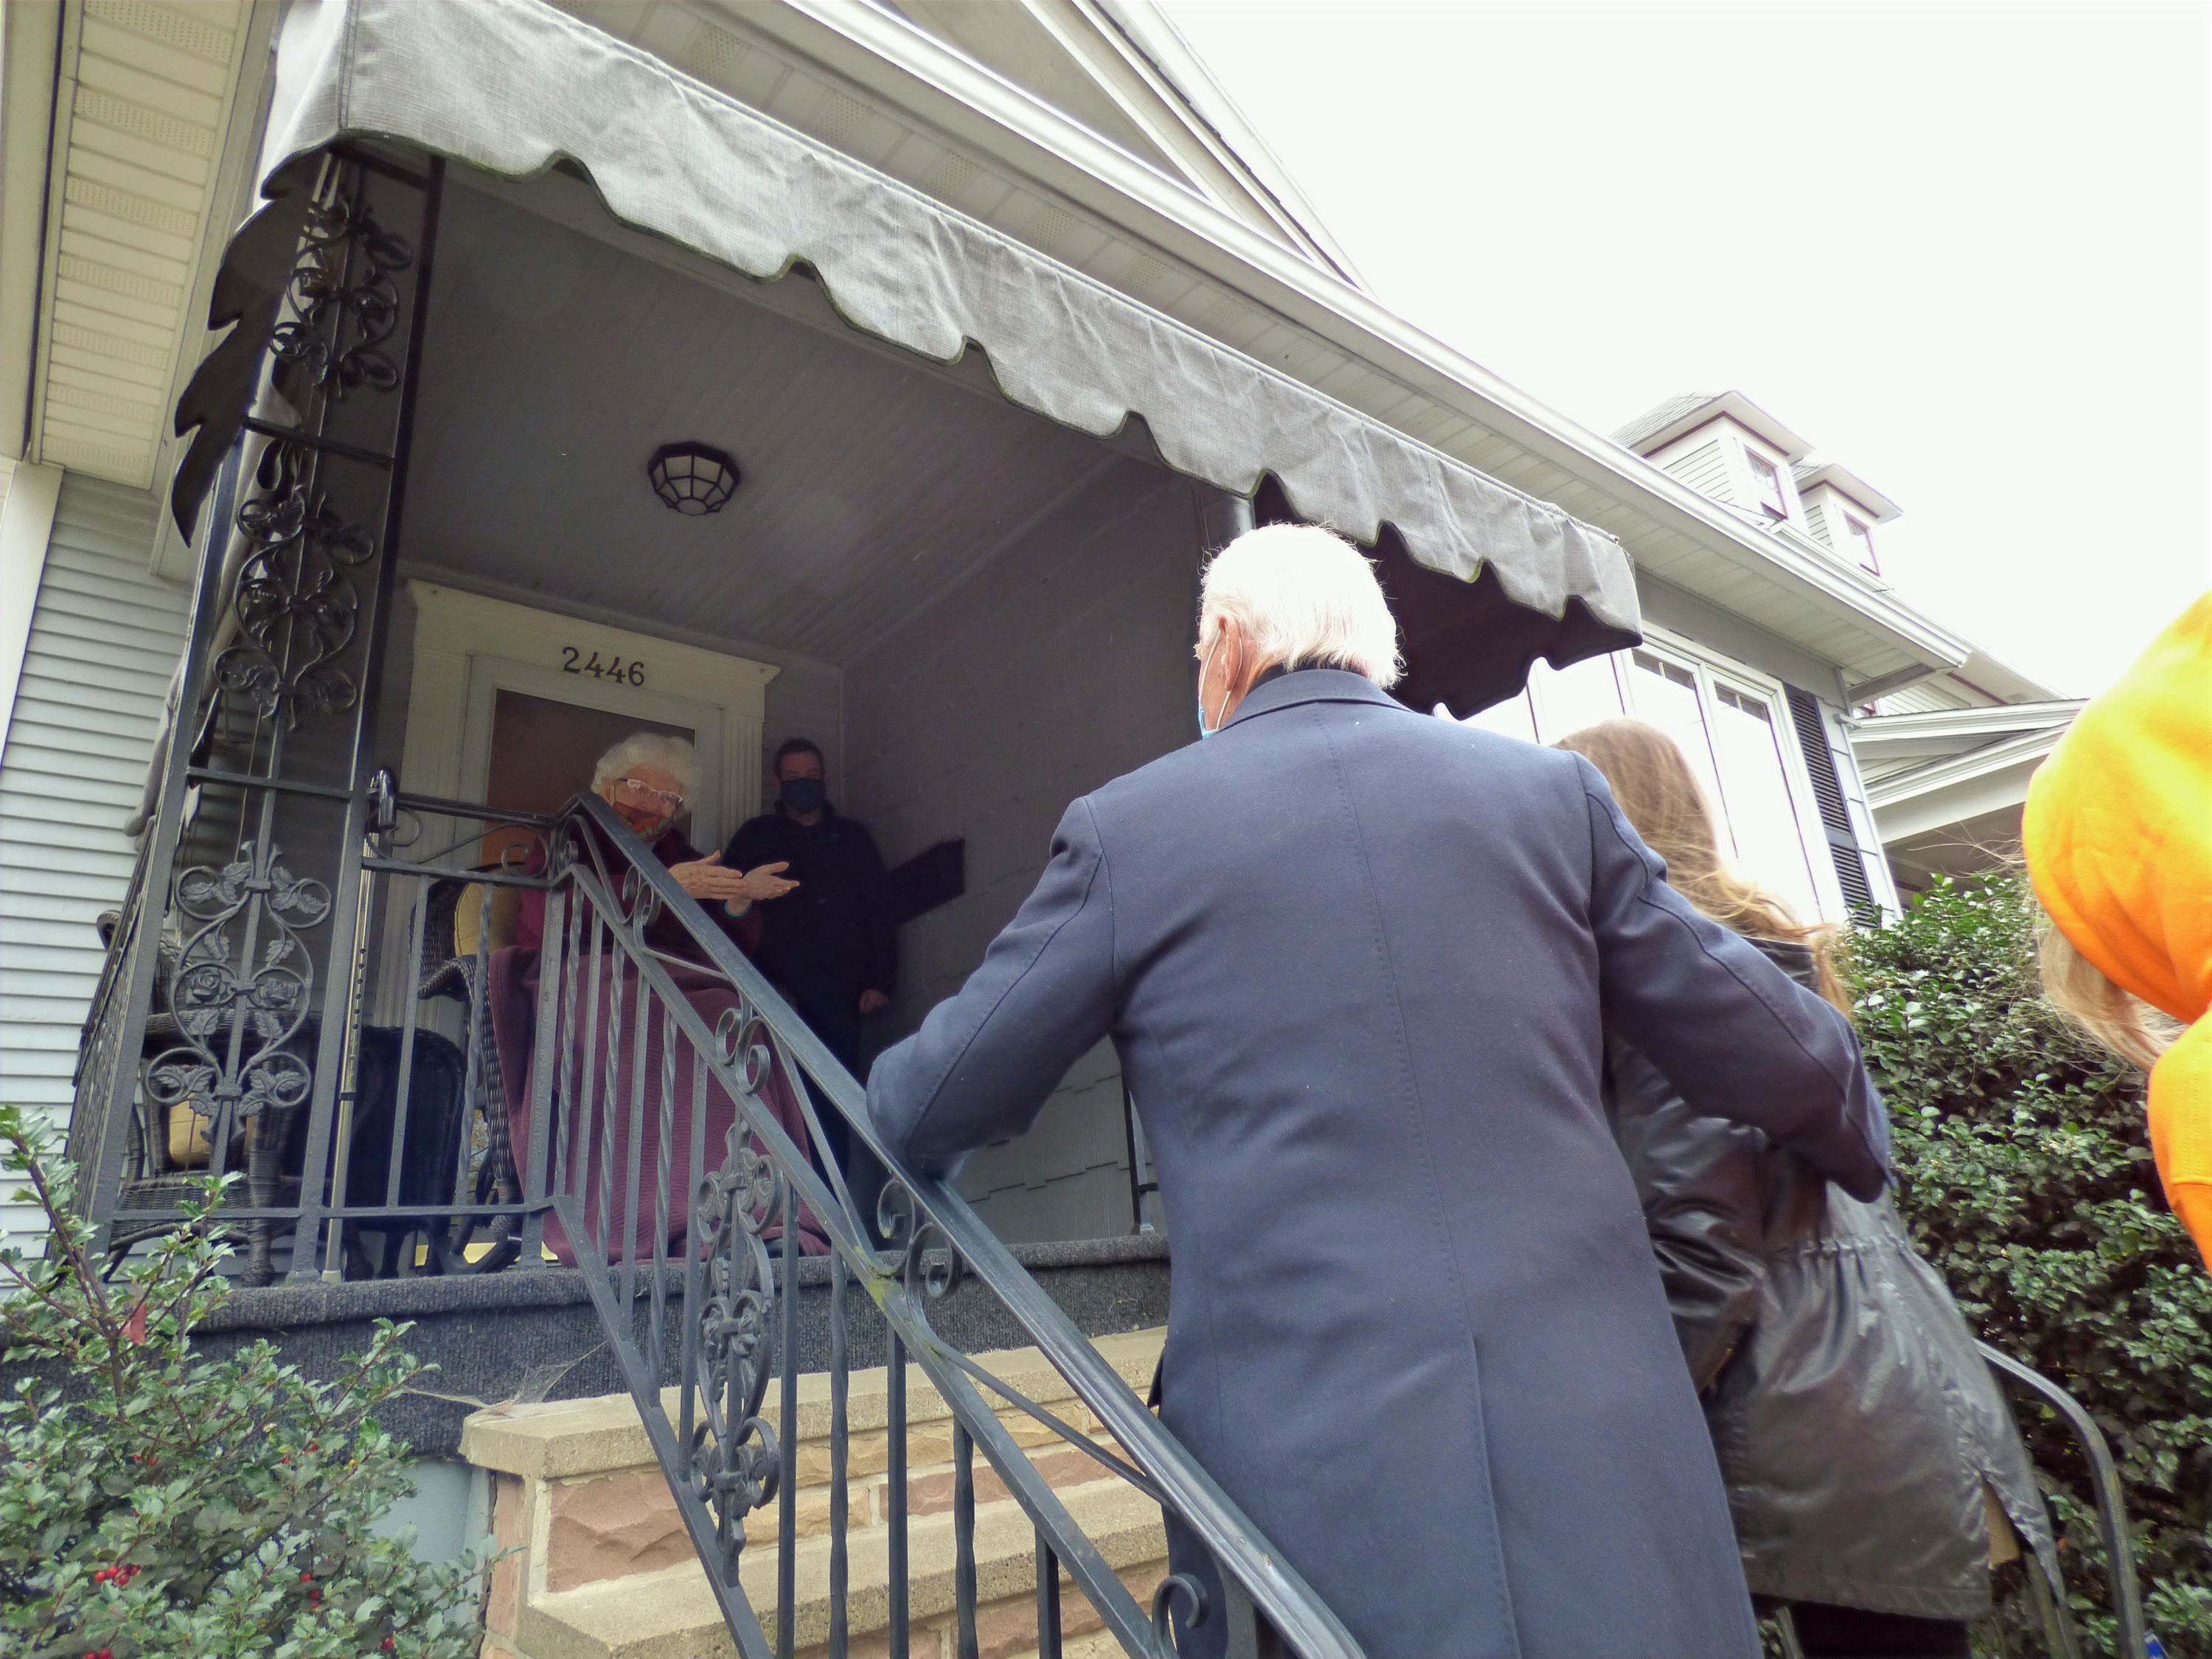 Anne Kearns, and her son Marty greet Joe Biden and his granddaughter Natalie and Finnegan (not shown